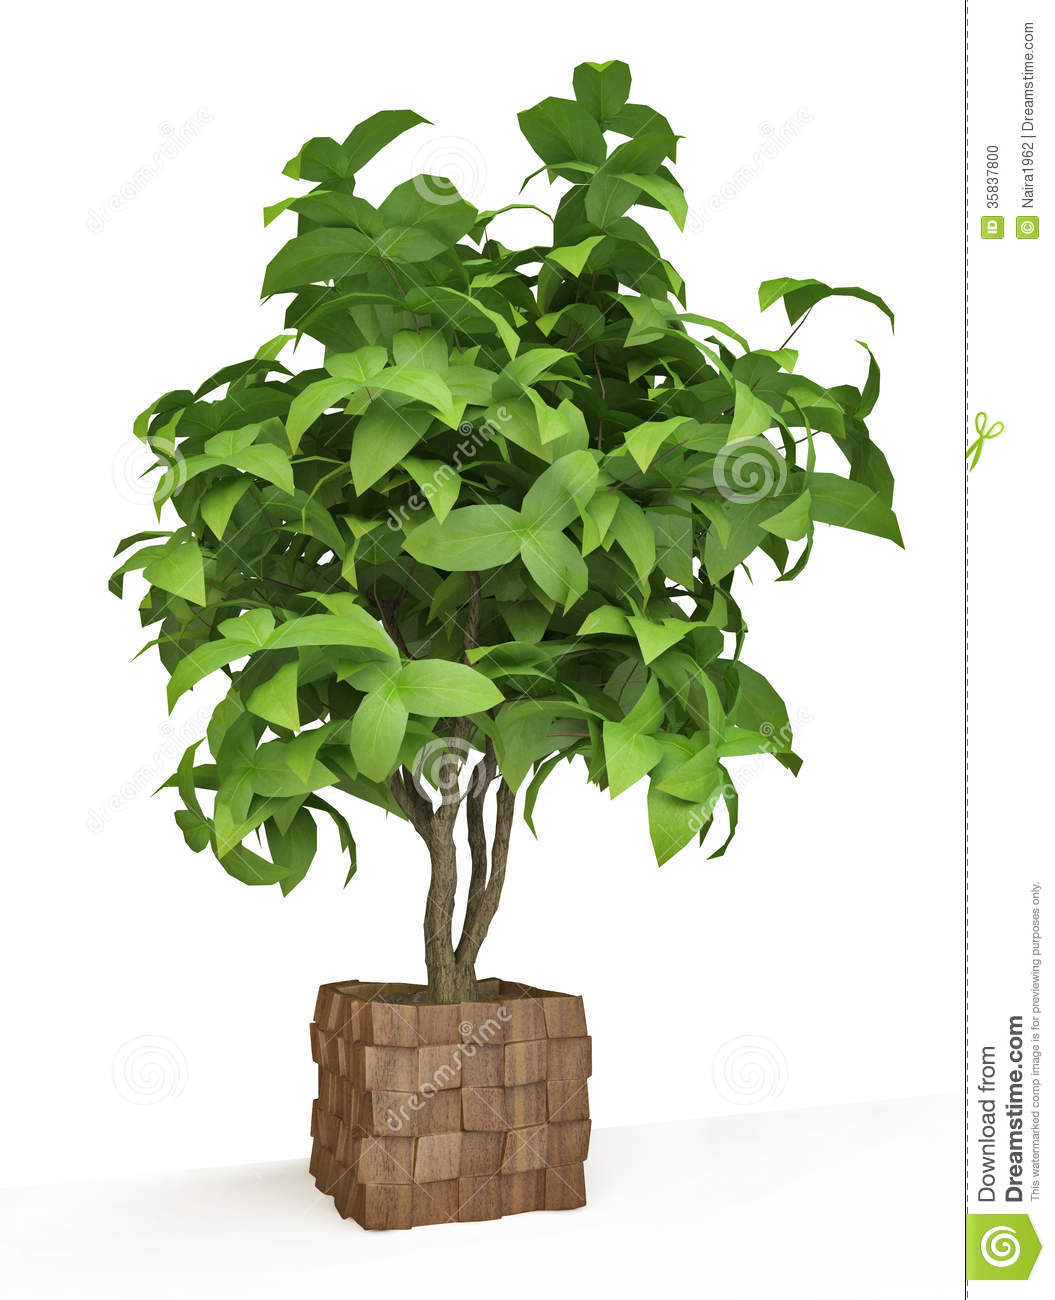 Arbre d coratif de plante d 39 int rieur illustration stock for Plante arbre interieur